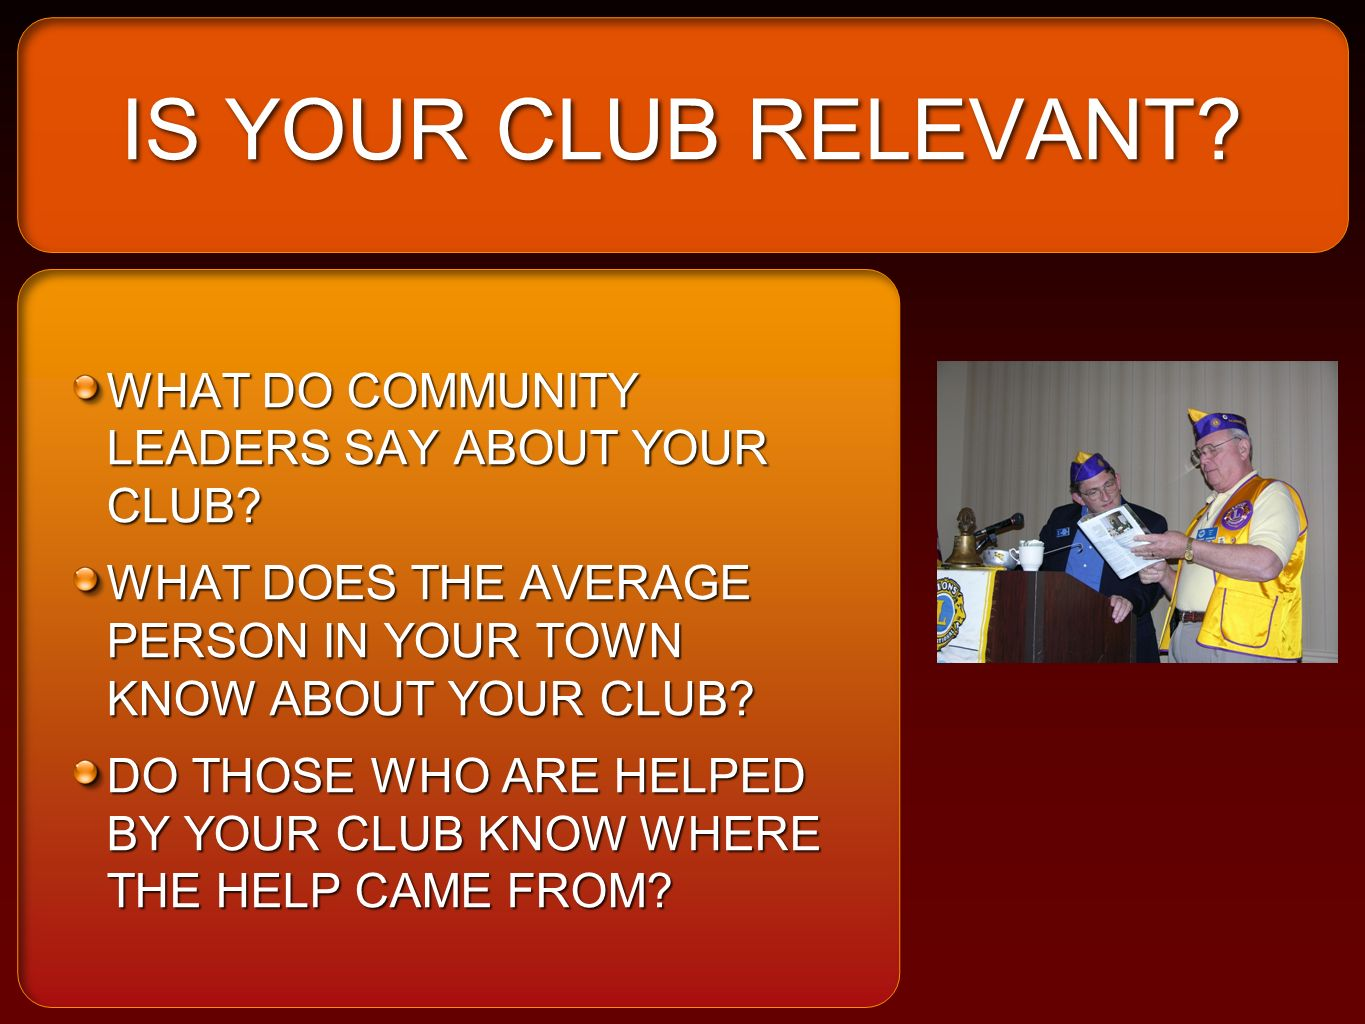 IS YOUR CLUB RELEVANT. WHAT DO COMMUNITY LEADERS SAY ABOUT YOUR CLUB.